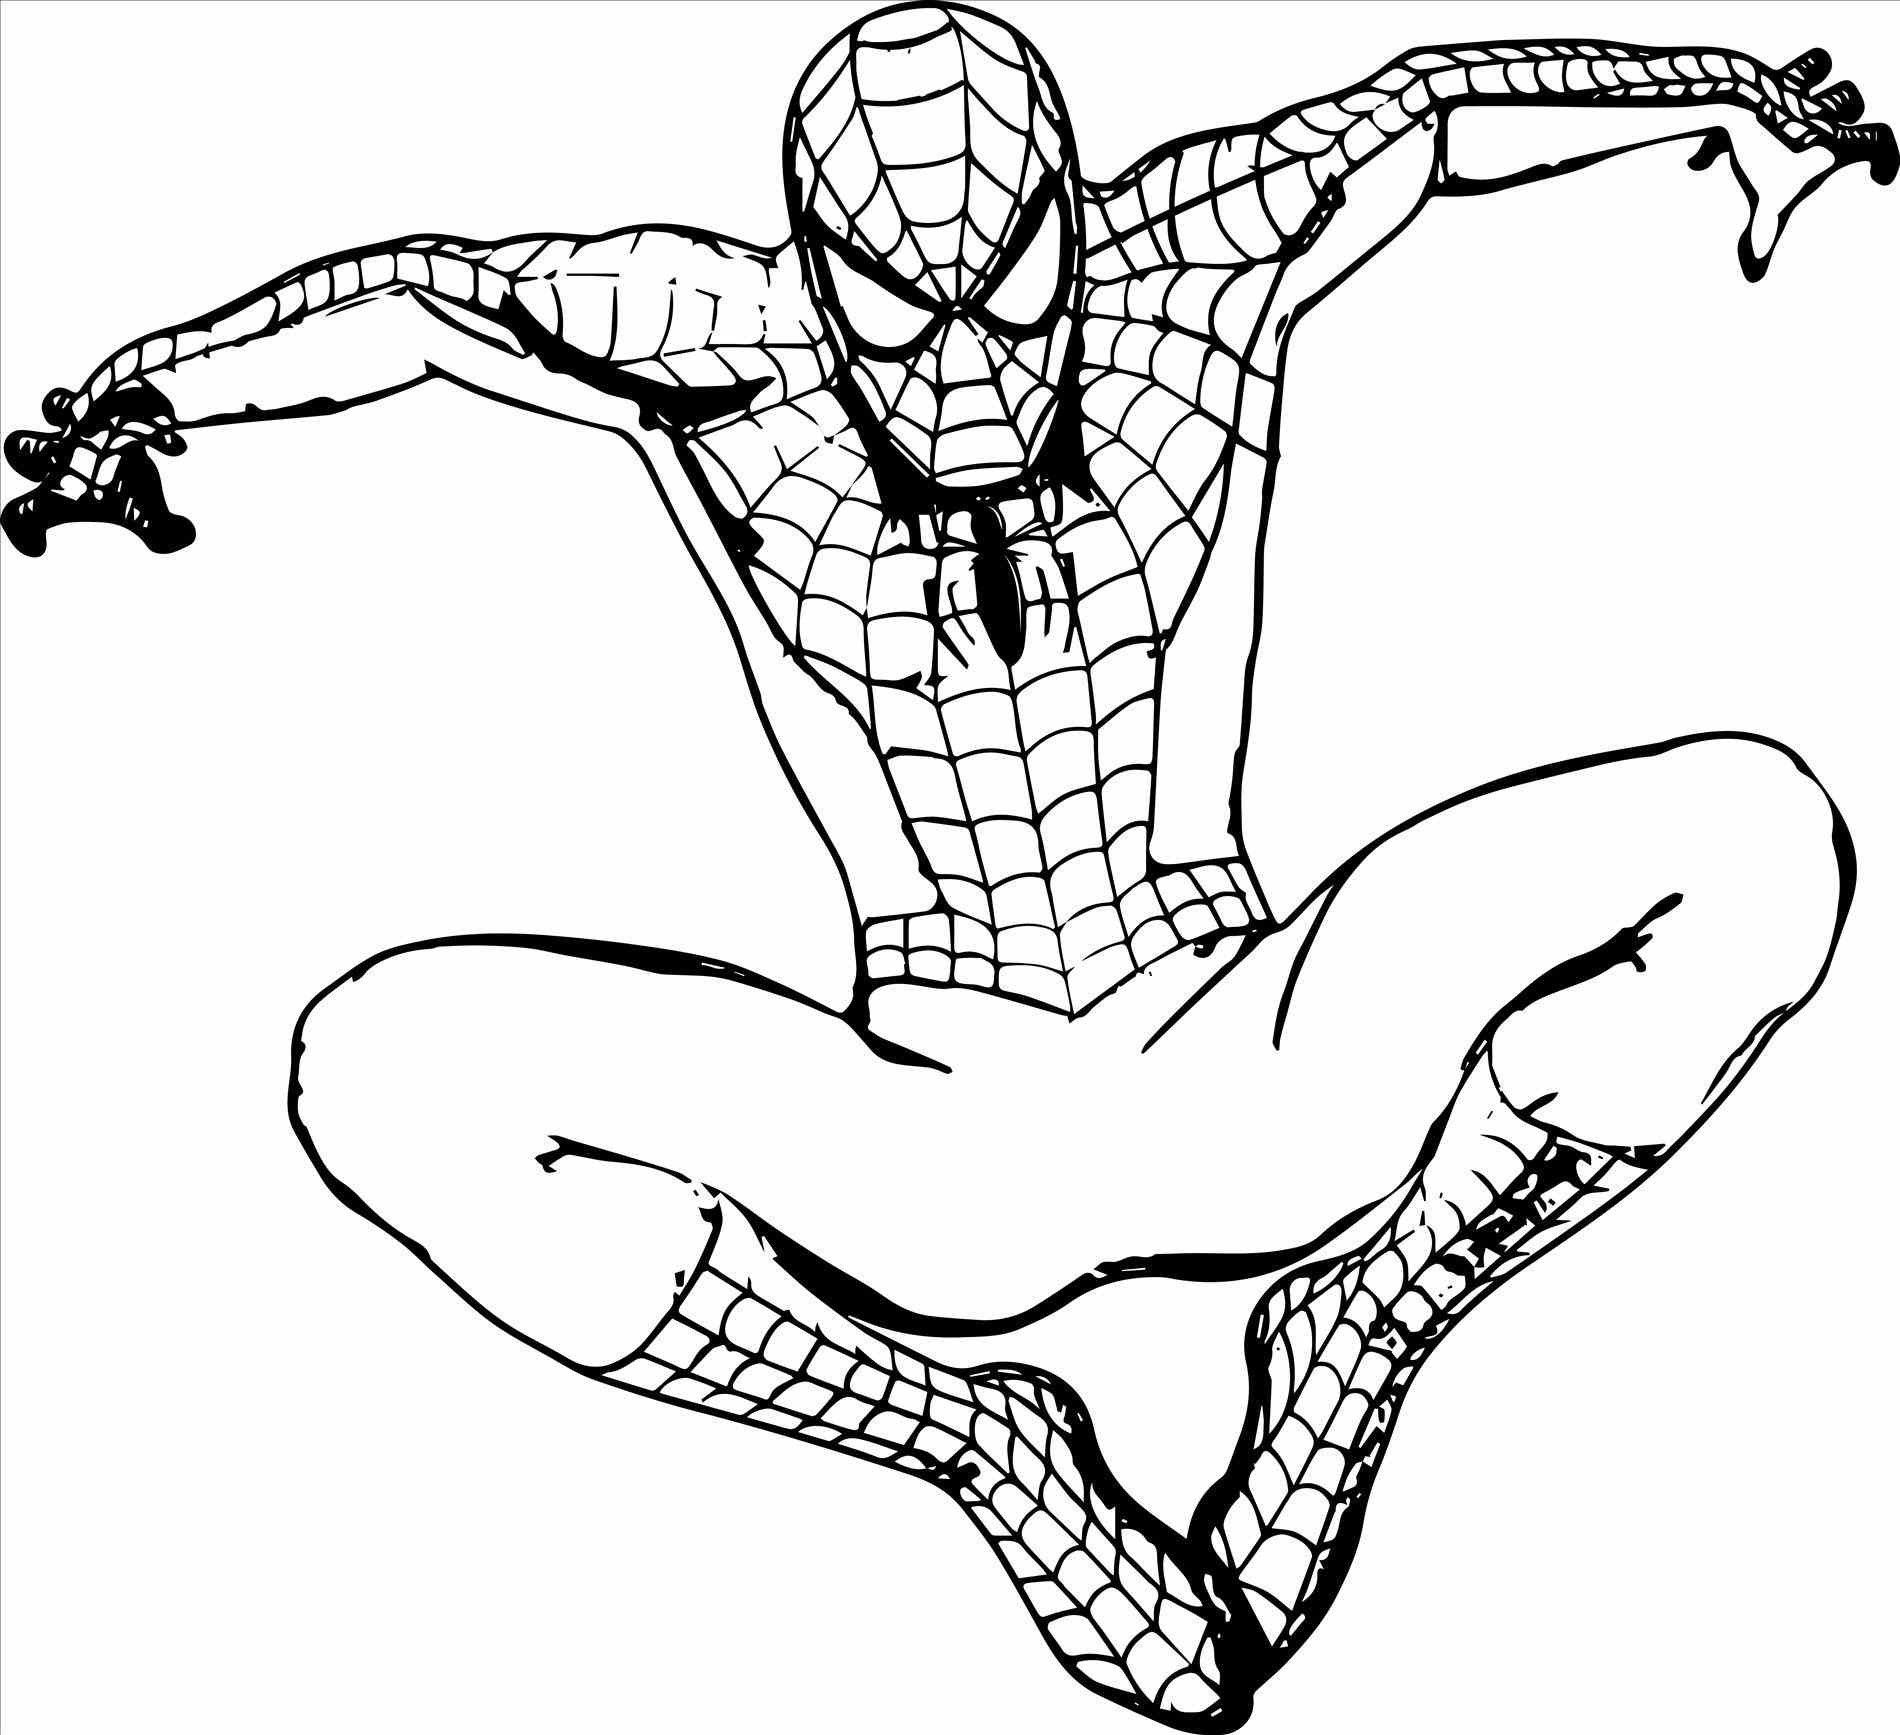 Free Printable Superhero Coloring Pages Collection Free Superhero Coloring Pa Superhero Coloring Pages Captain America Coloring Pages Avengers Coloring Pages